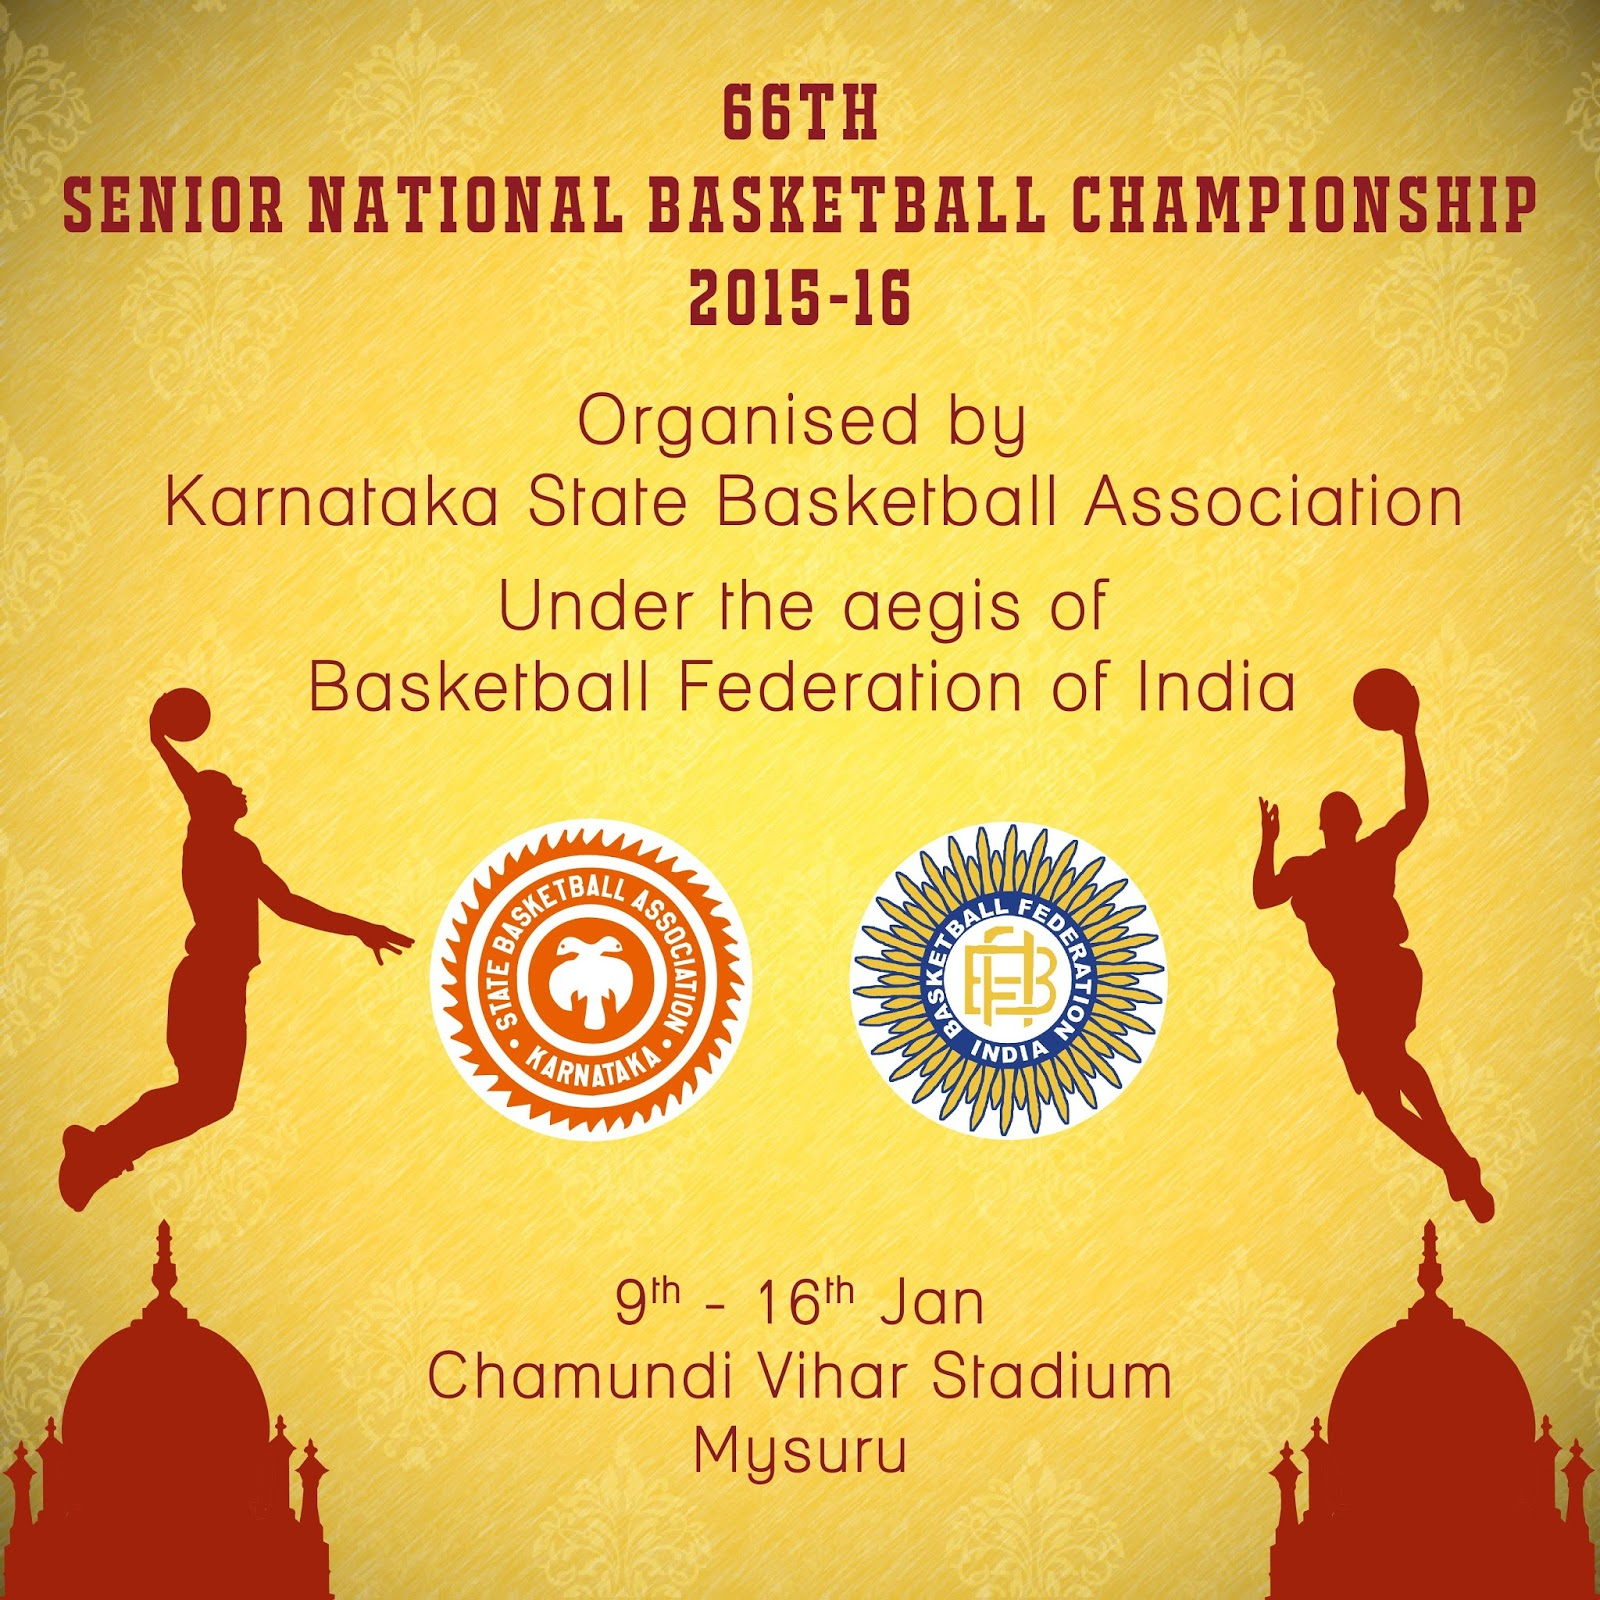 Hoopistani indias national basketball championship to tip off in indias national basketball championship to tip off in mysuru karnataka on january 9 with the countrys finest talents thecheapjerseys Choice Image